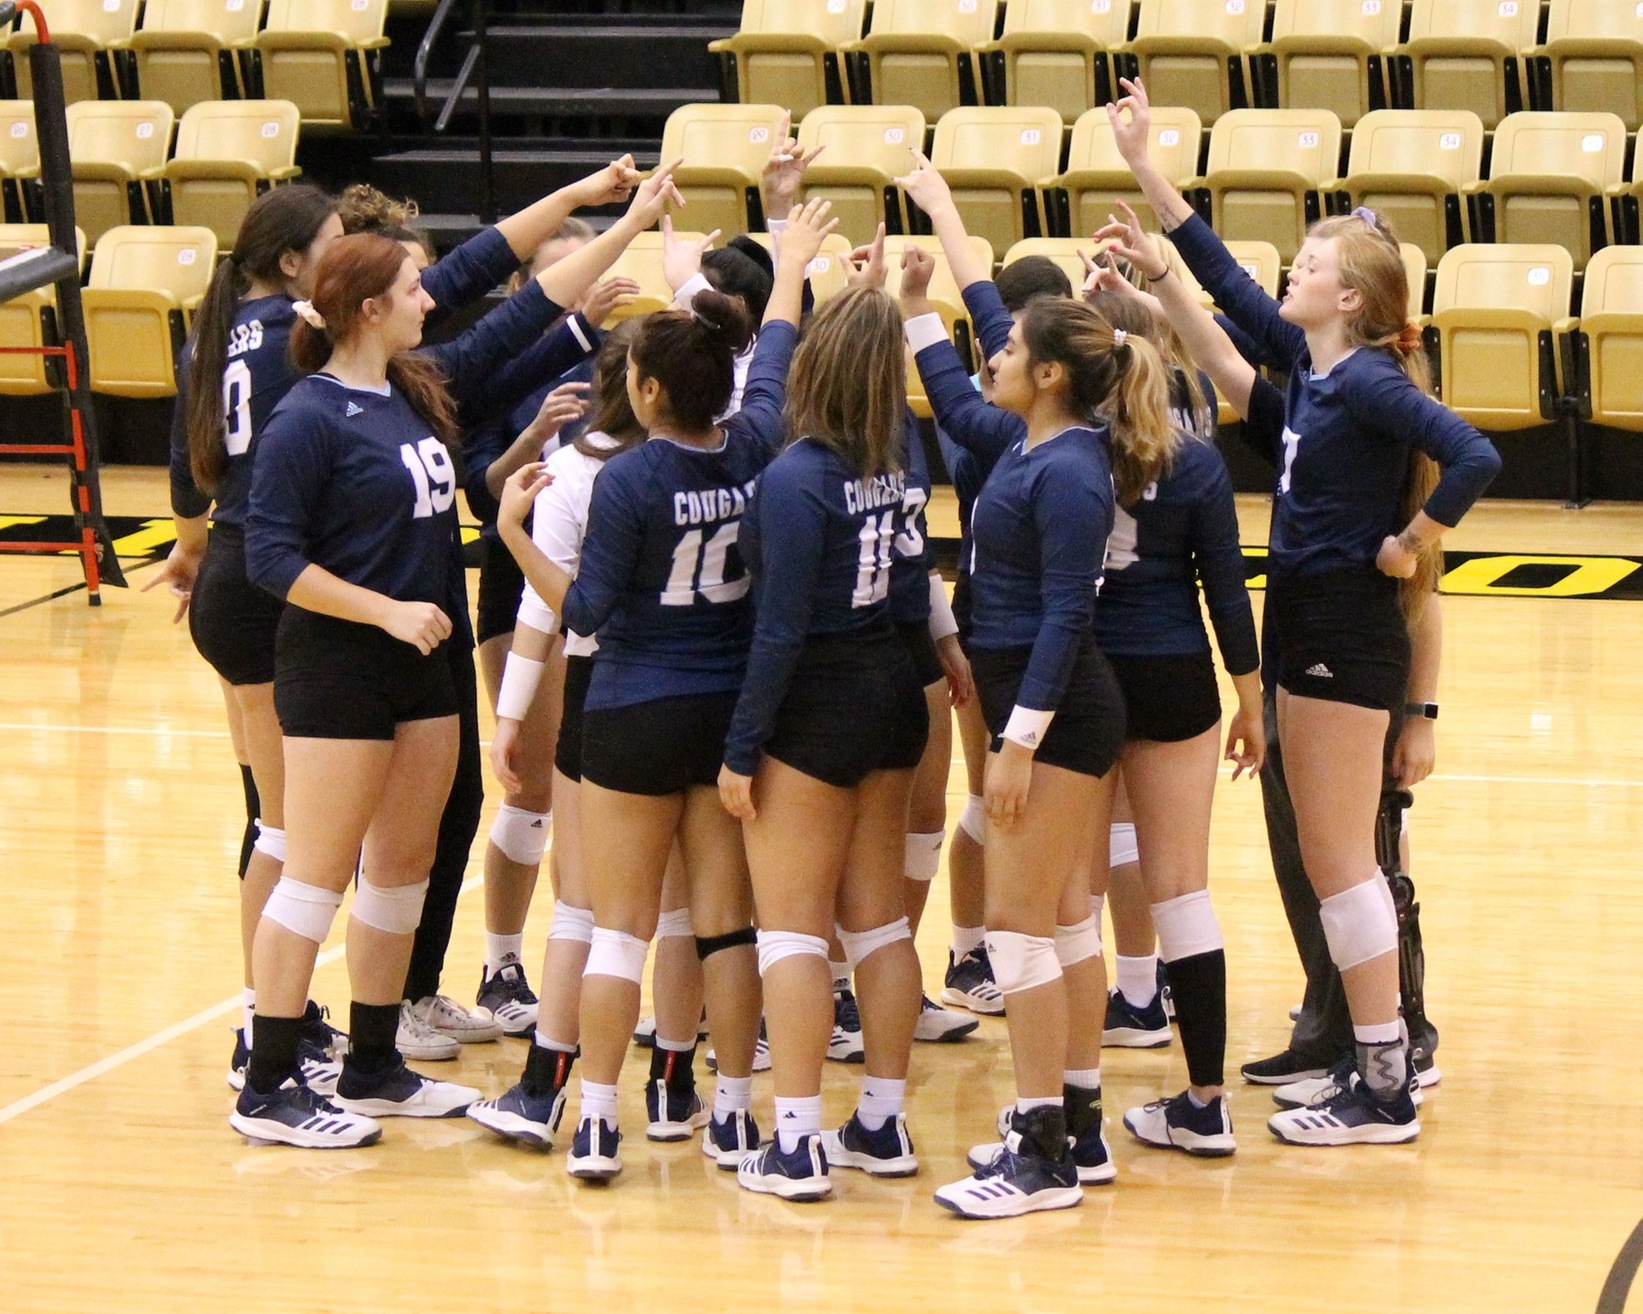 CBC Volleyball Ends Season at Regional Tournament